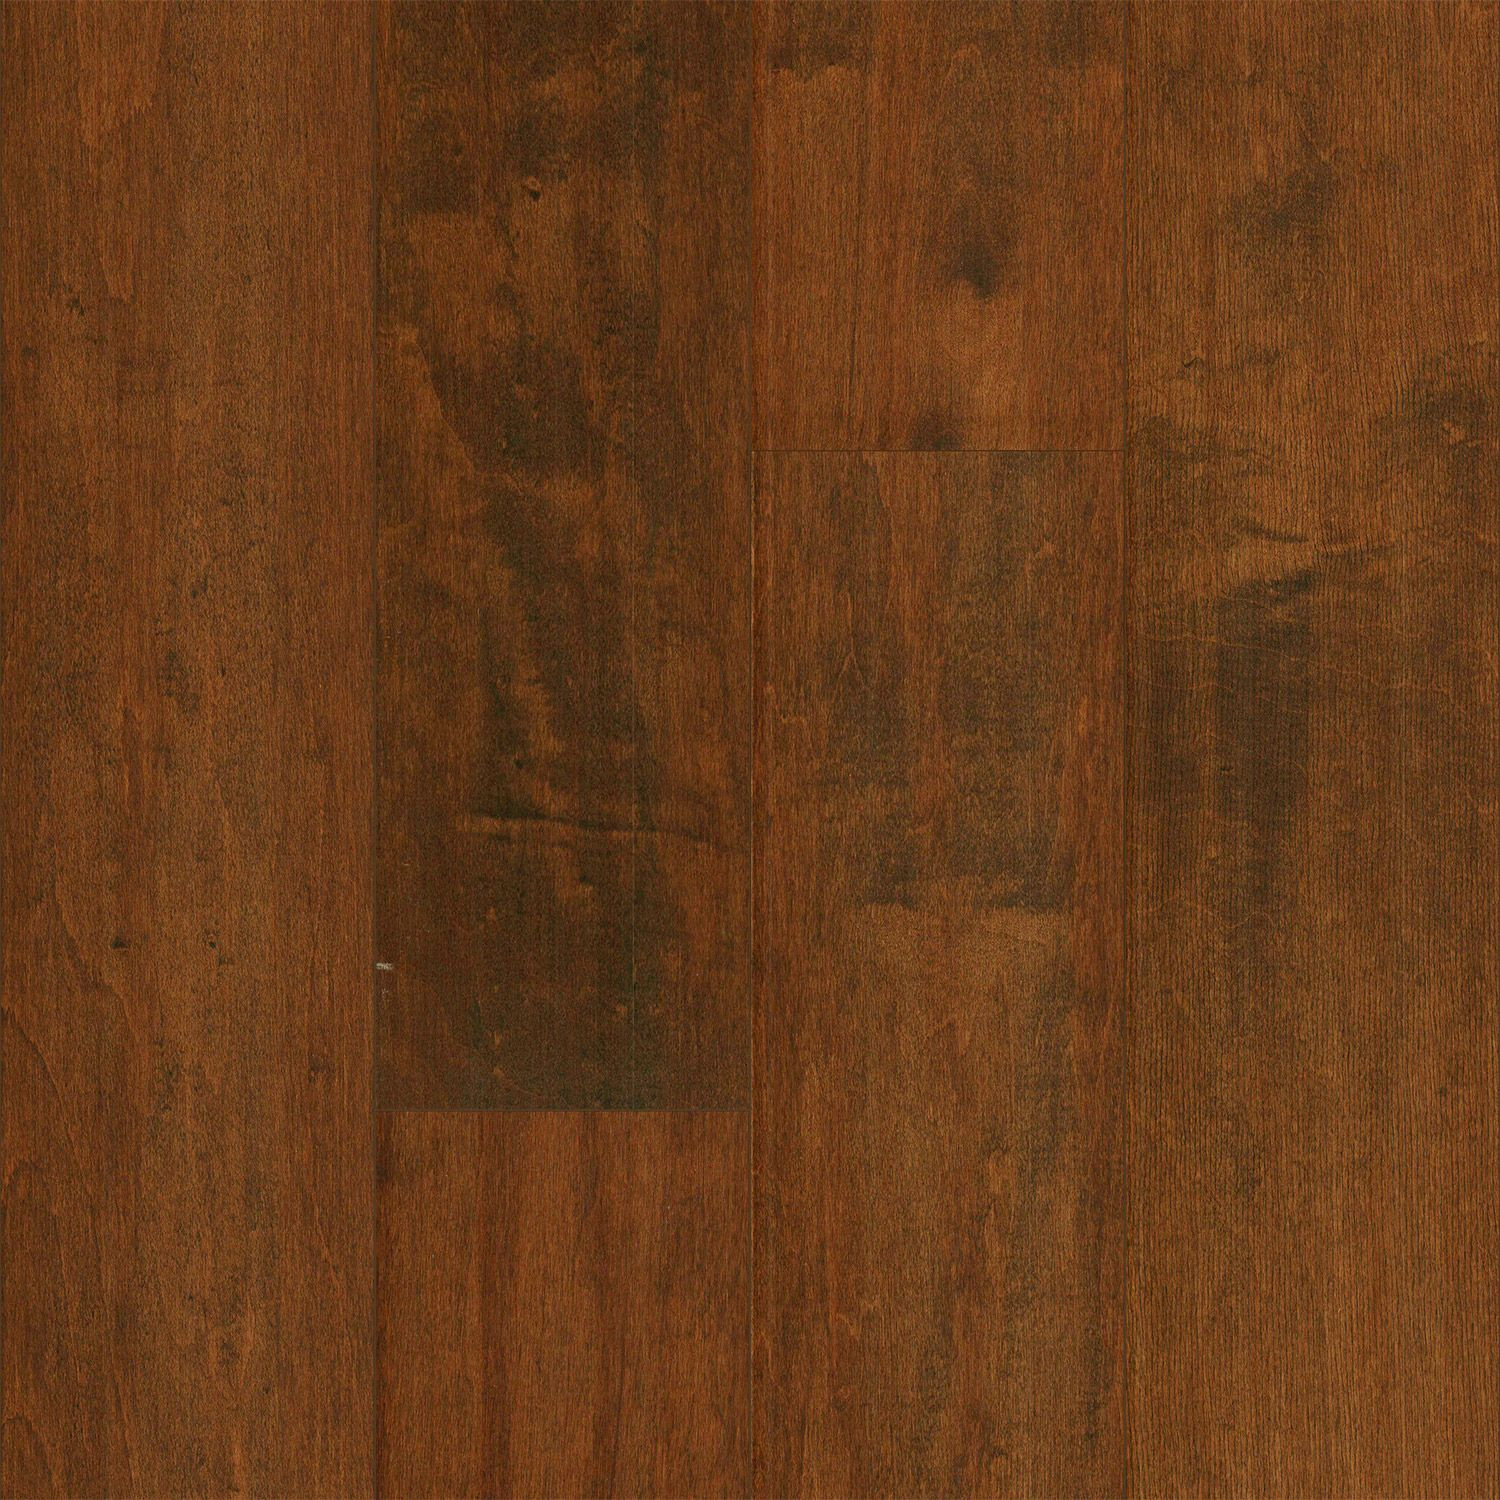 Mohawk Hardwood Flooring Oak Cherry Of Mohawk Santa Barbara Plank Light Auburn Maple 5 Hand Scraped for Mohawk Santa Barbara Plank Light Auburn Maple 5 Hand Scraped Hardwood